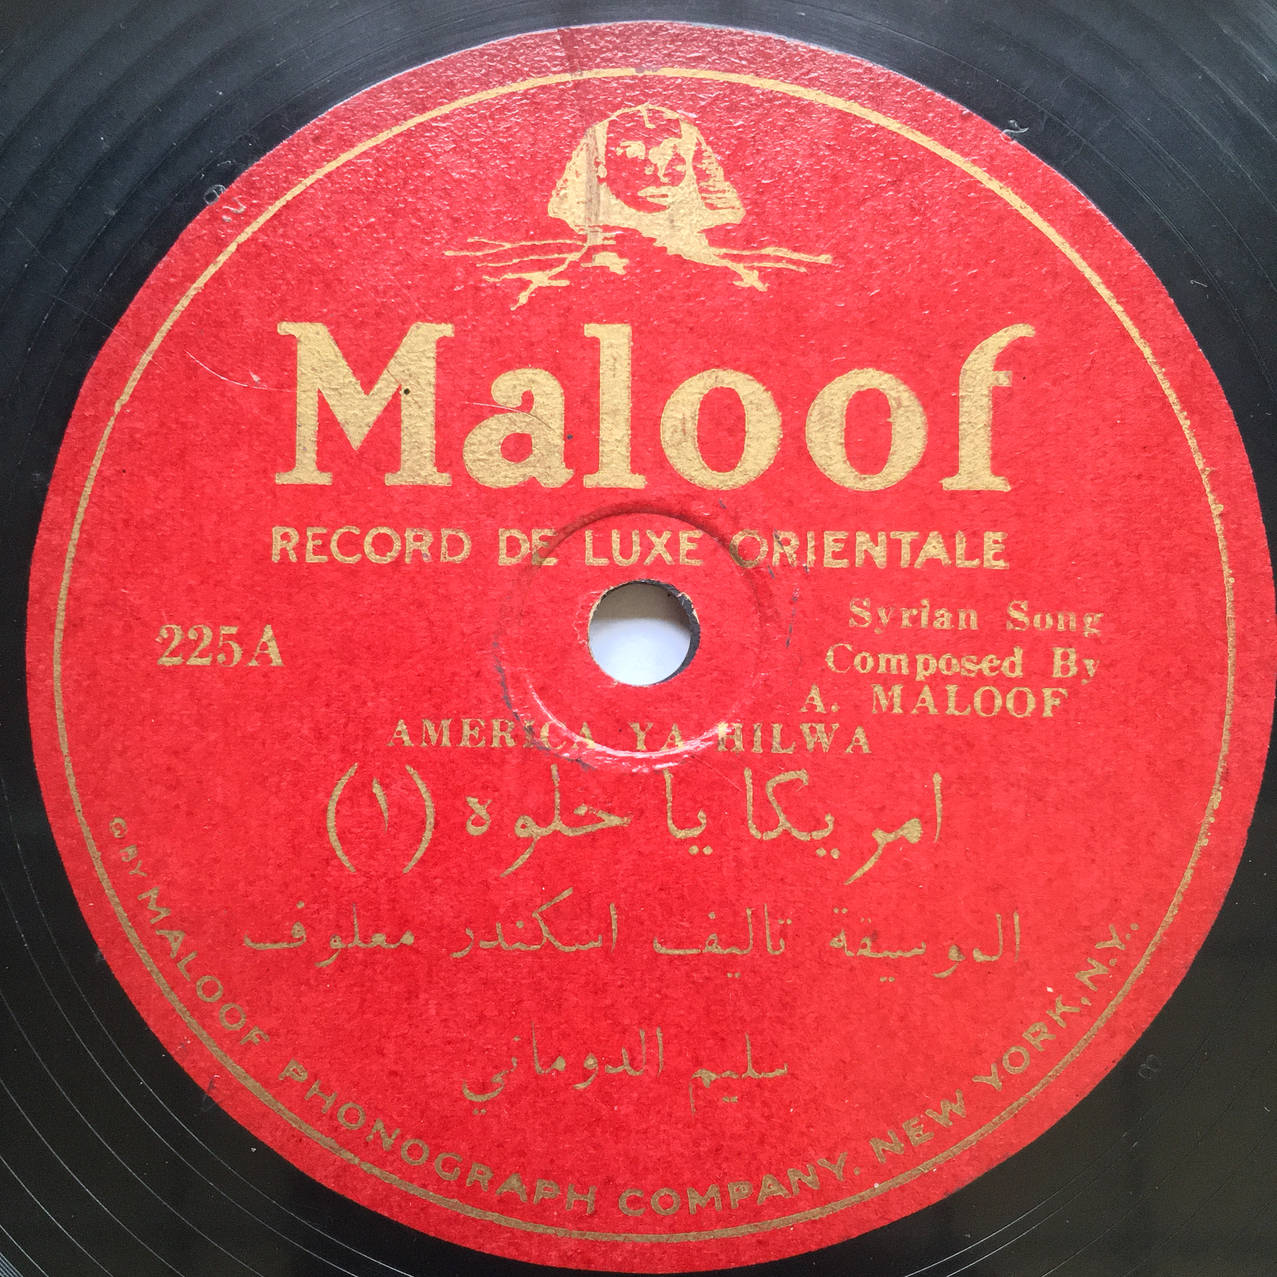 78 RPM Maloof record label. Courtesy of the Richard M. Breaux Collection.